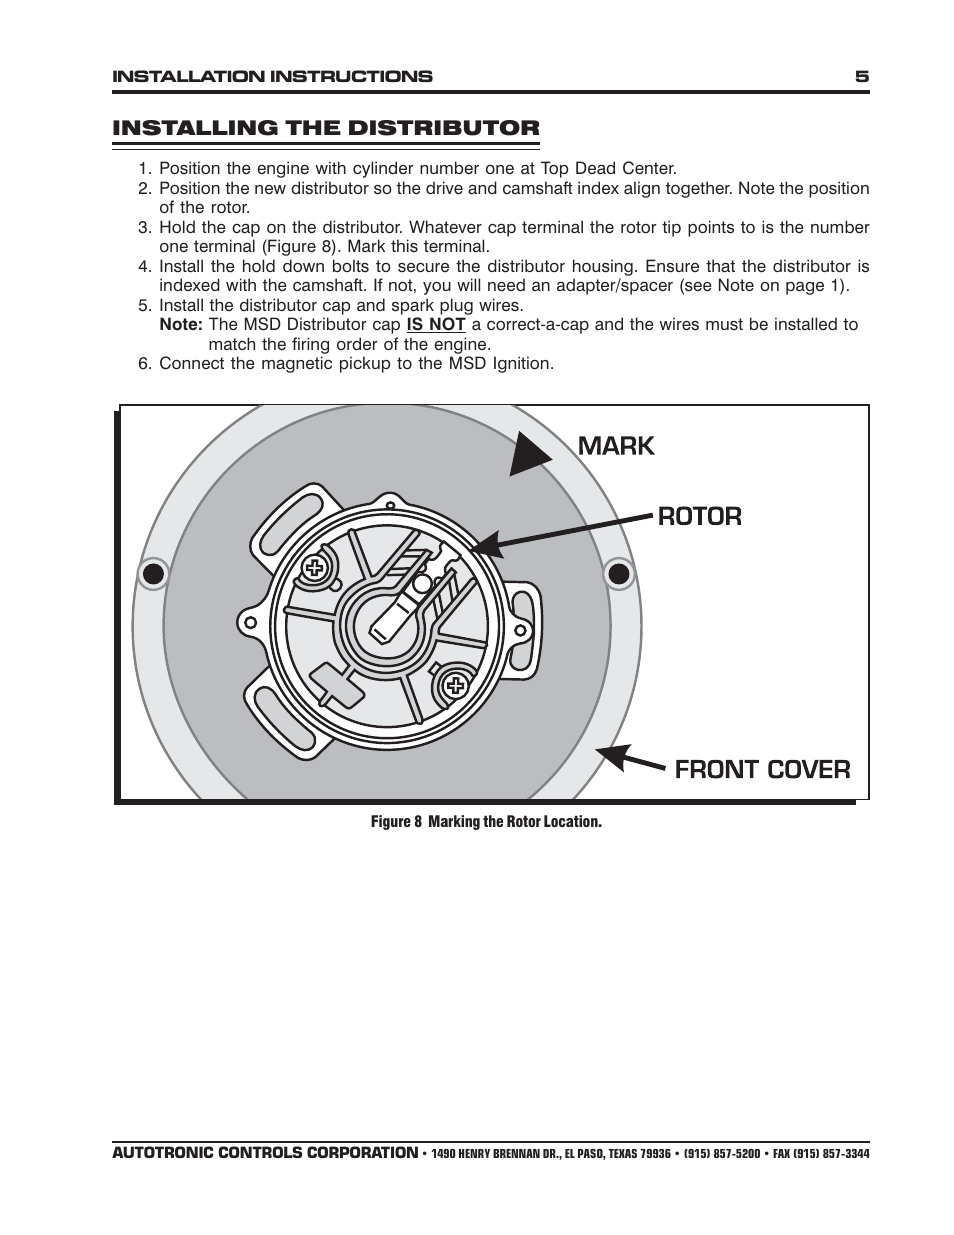 medium resolution of installing the distributor msd 8353 ford front mount flathead pro billet distributor installation user manual page 5 8